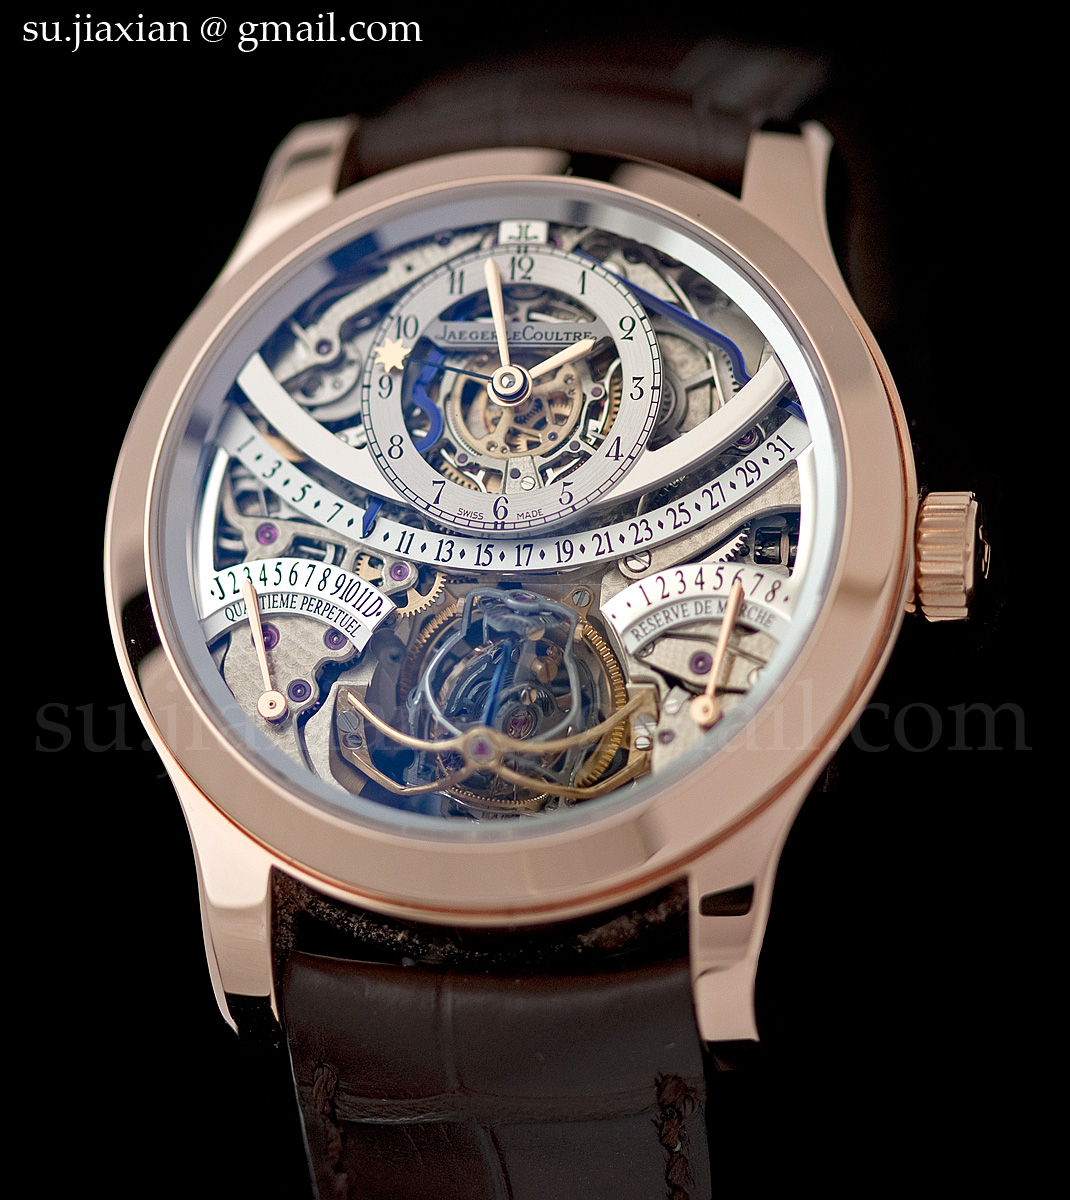 watches by sjx hands on with the jaeger lecoultre gyrotourbillon i in rose gold with live photos